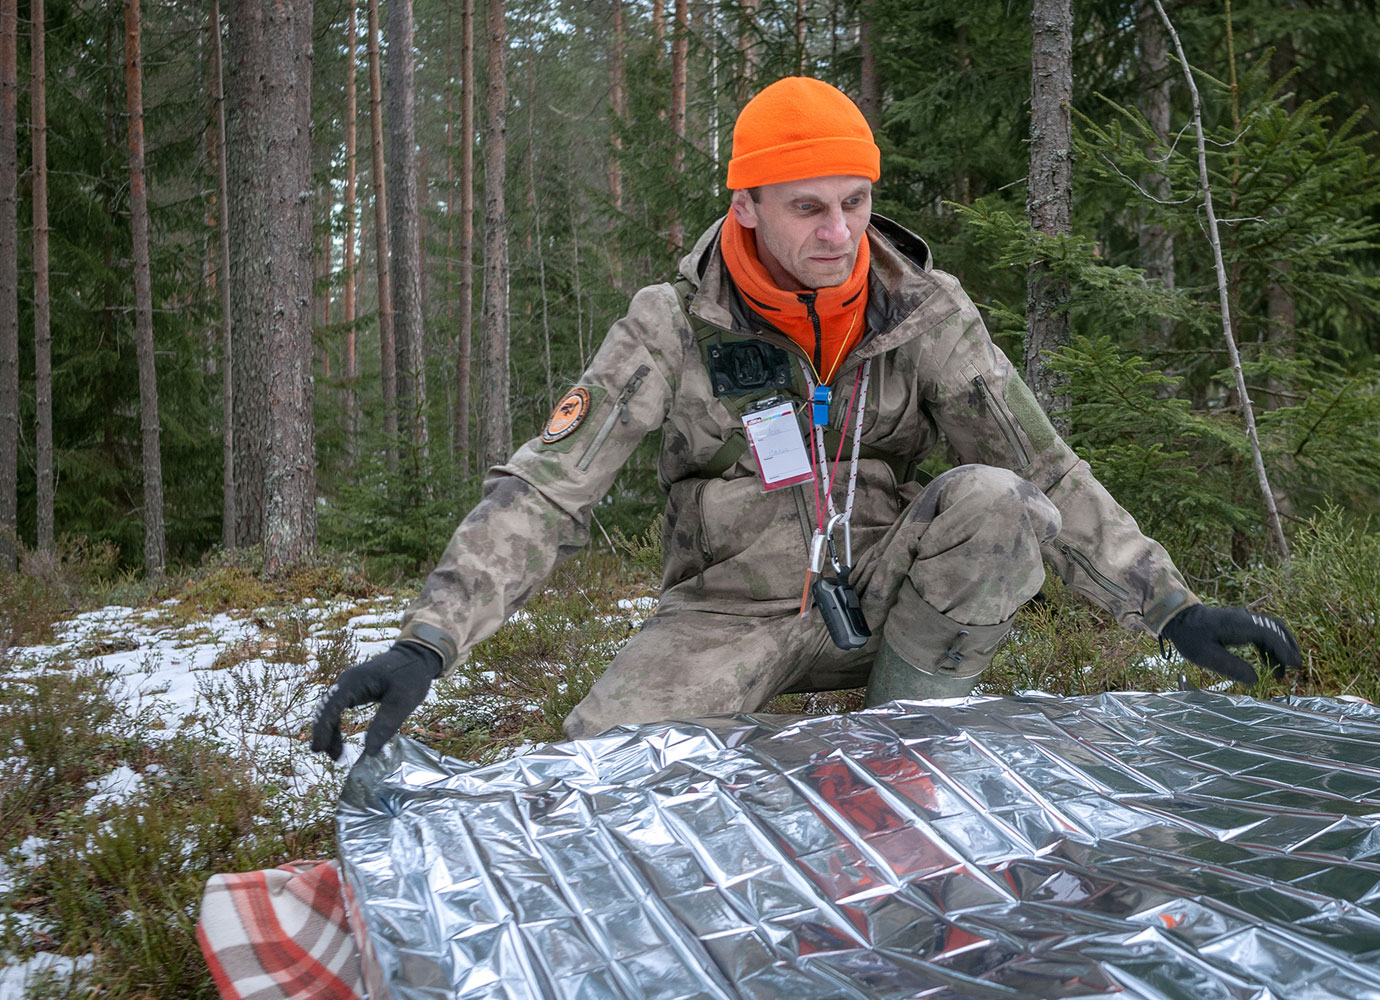 The everyday heroes behind Russia's voluntary search and rescue team